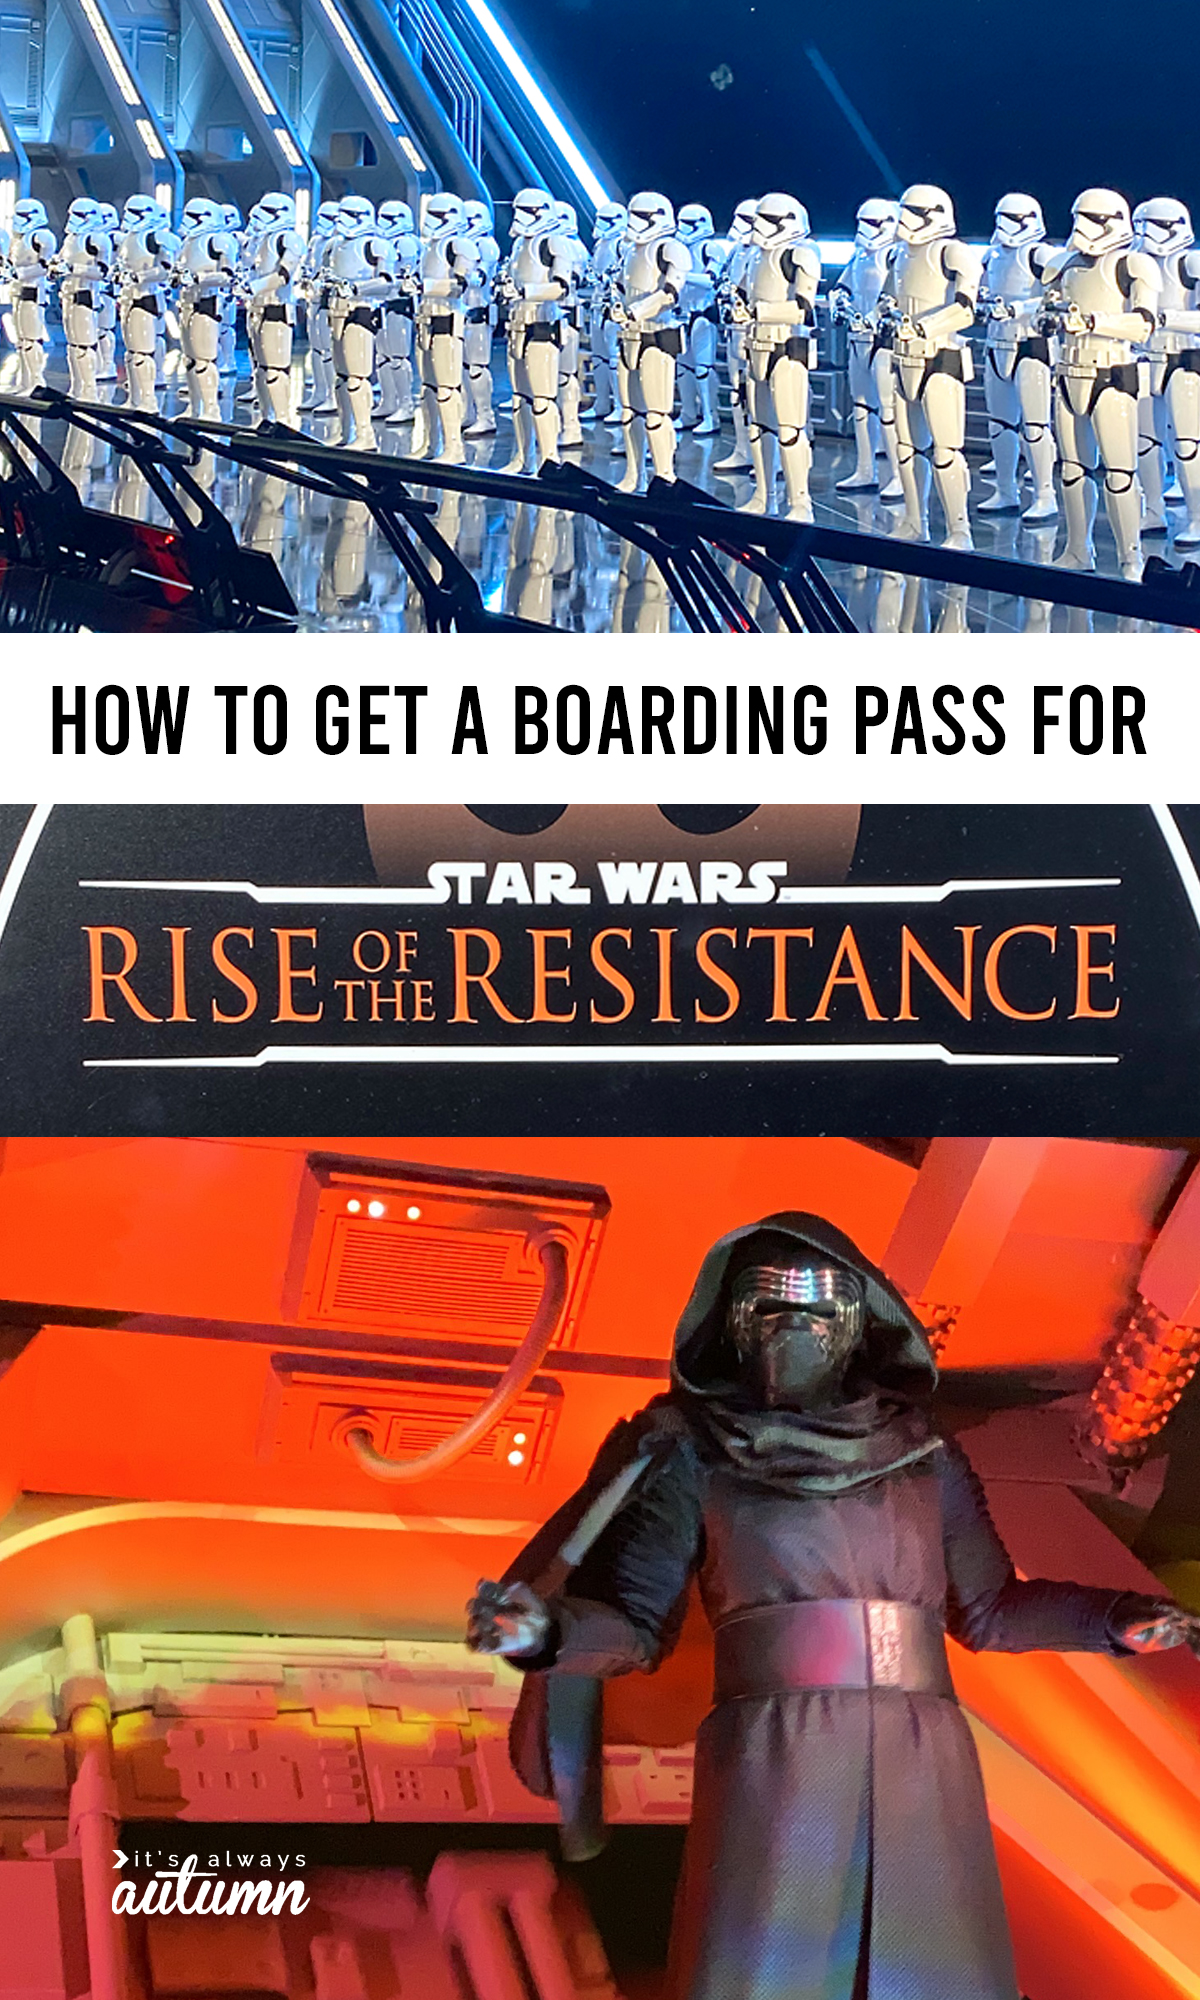 Did you know you can't ride the new Star Wars Rise of the Resistance without a boarding pass? Learn how to get one!